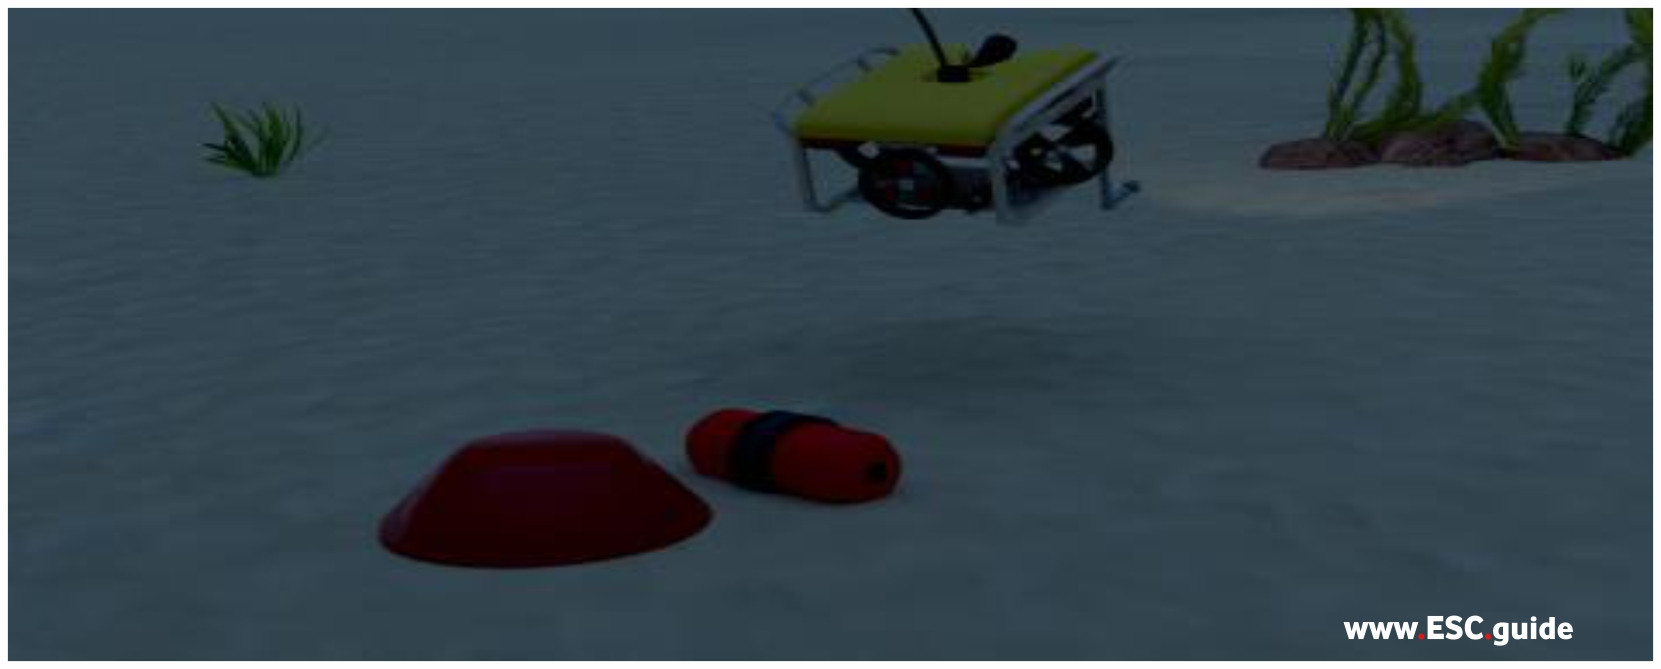 UUV and ROV are redeployed onto MANTAS and move away from identified mine.